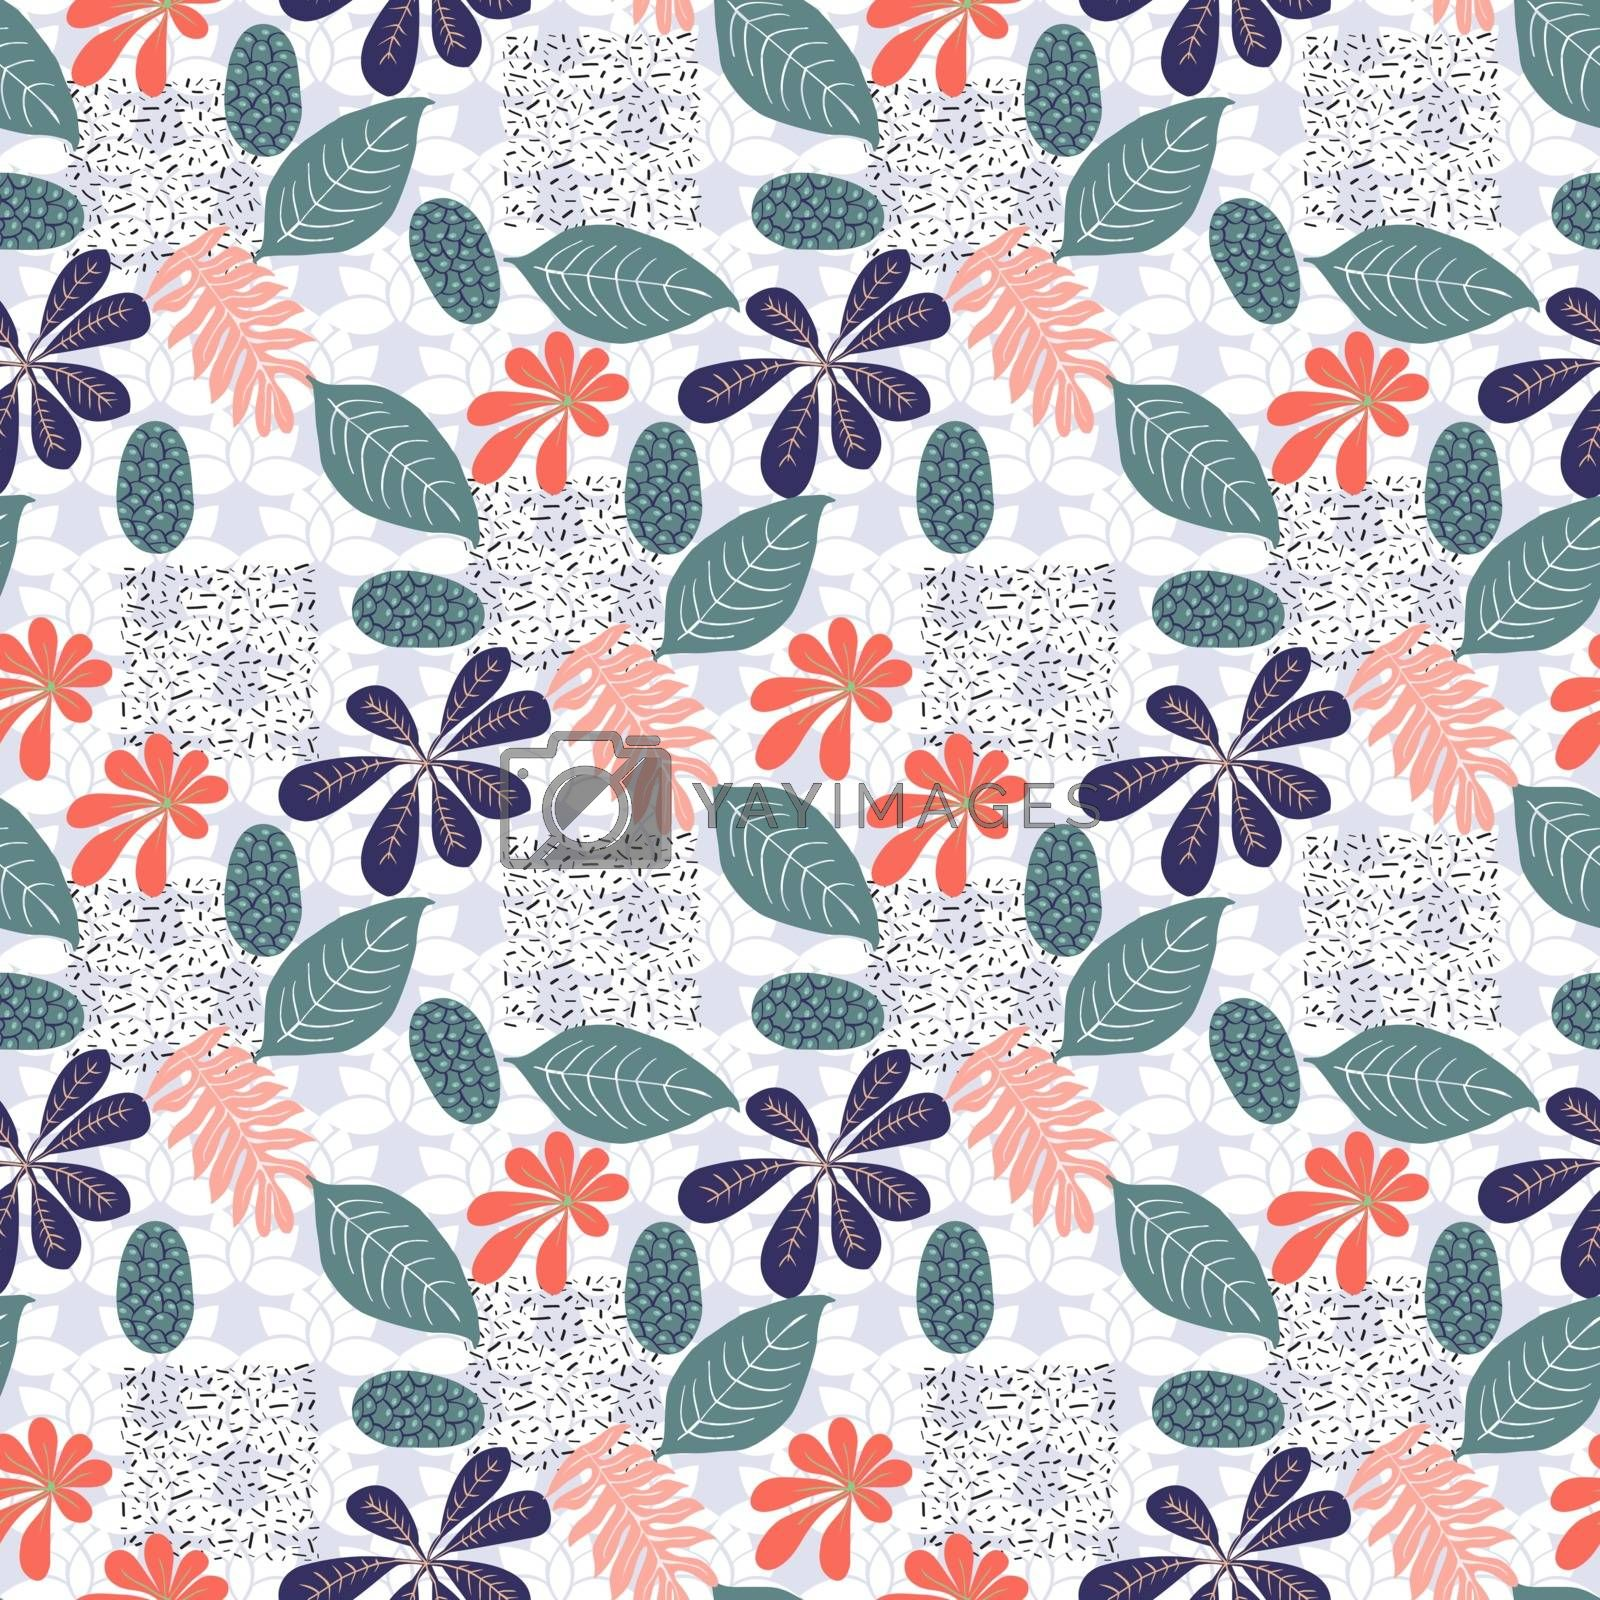 Trendy seamless exotic pattern with foliage. Modern abstract design for paper, wallpaper, cover, fabric, Interior decor. Vector abstract botanical illustration.